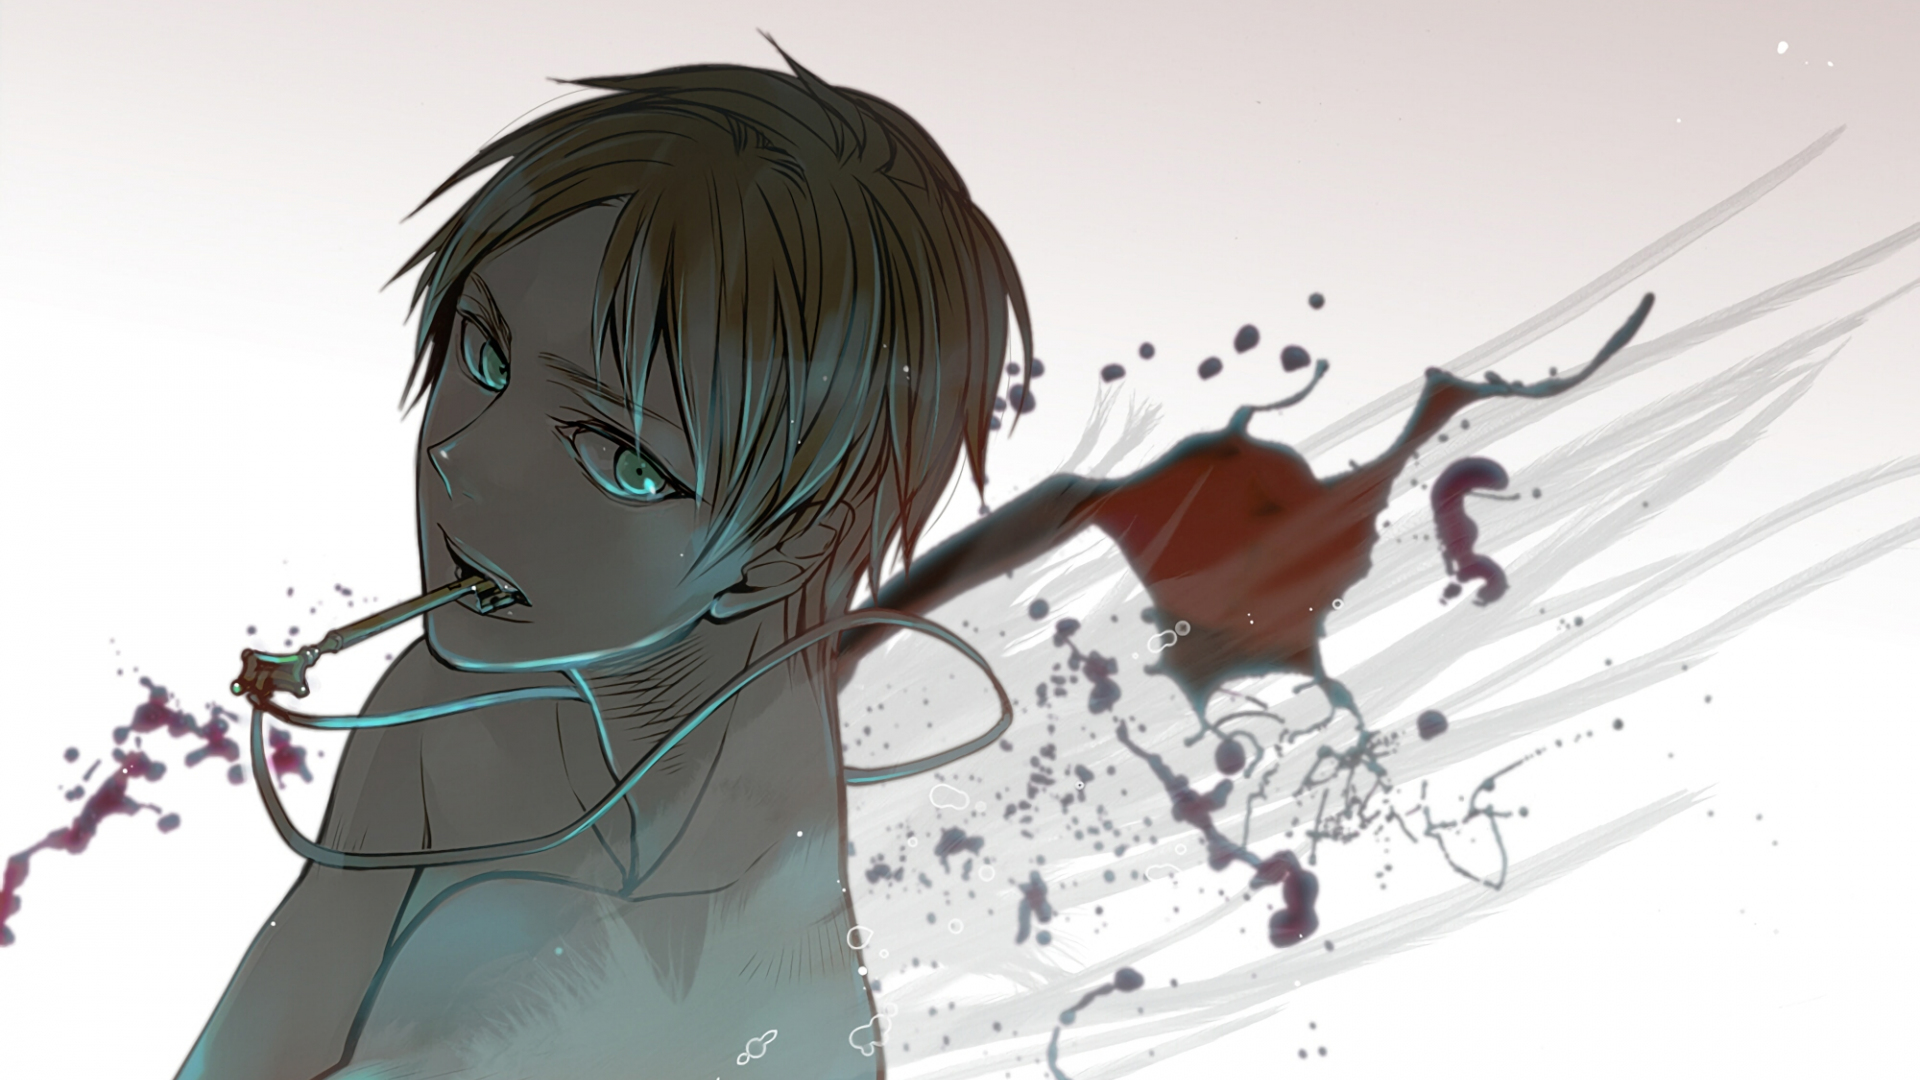 Desktop Wallpaper Eren Yeager Anime Attach On Titan Hd Image Picture Background M Wuin